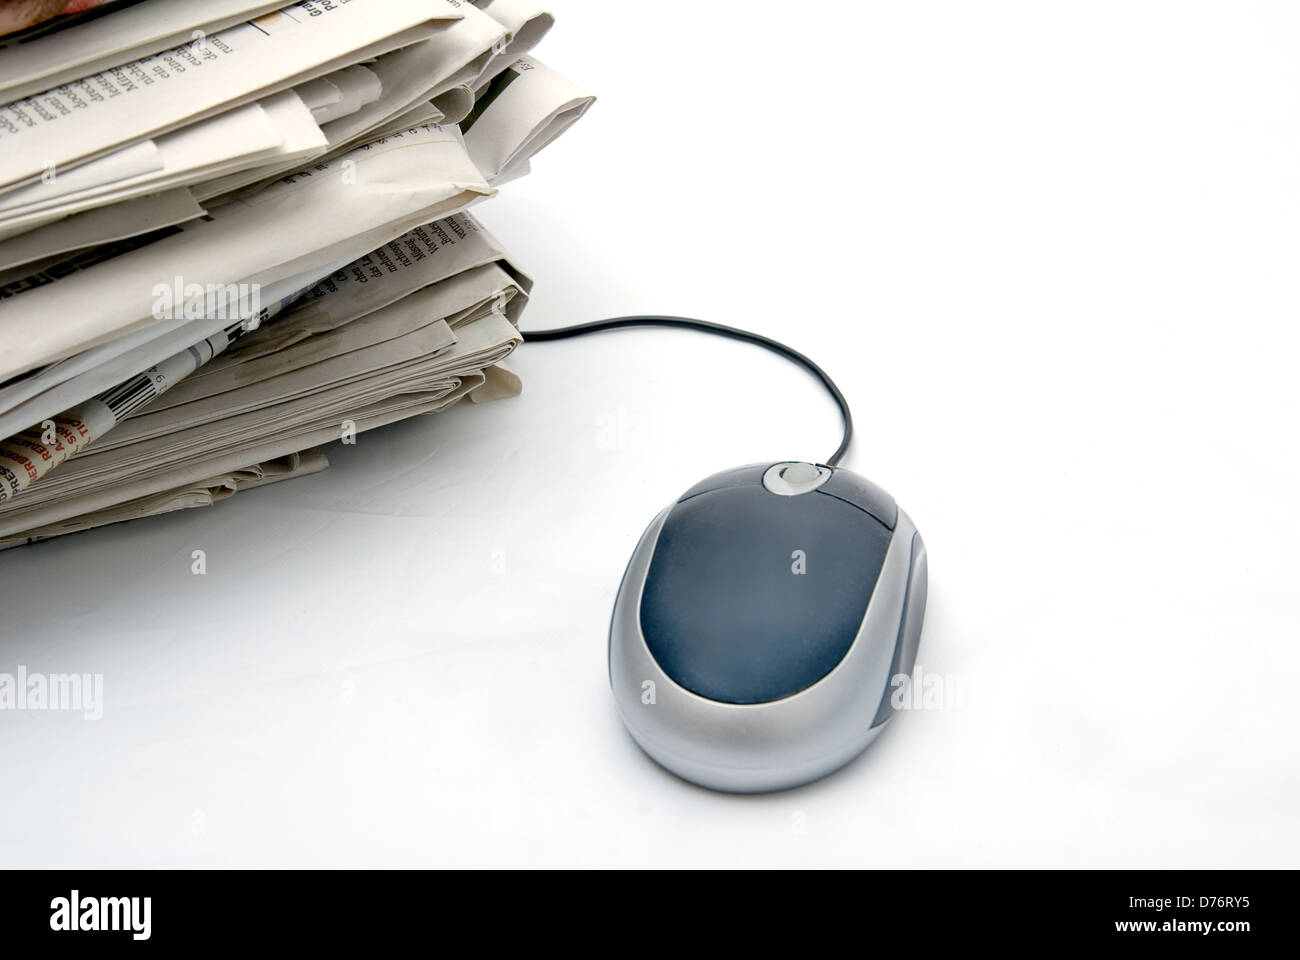 pc mouse next to a pack of classic newspapers on light background with copy space Stock Photo